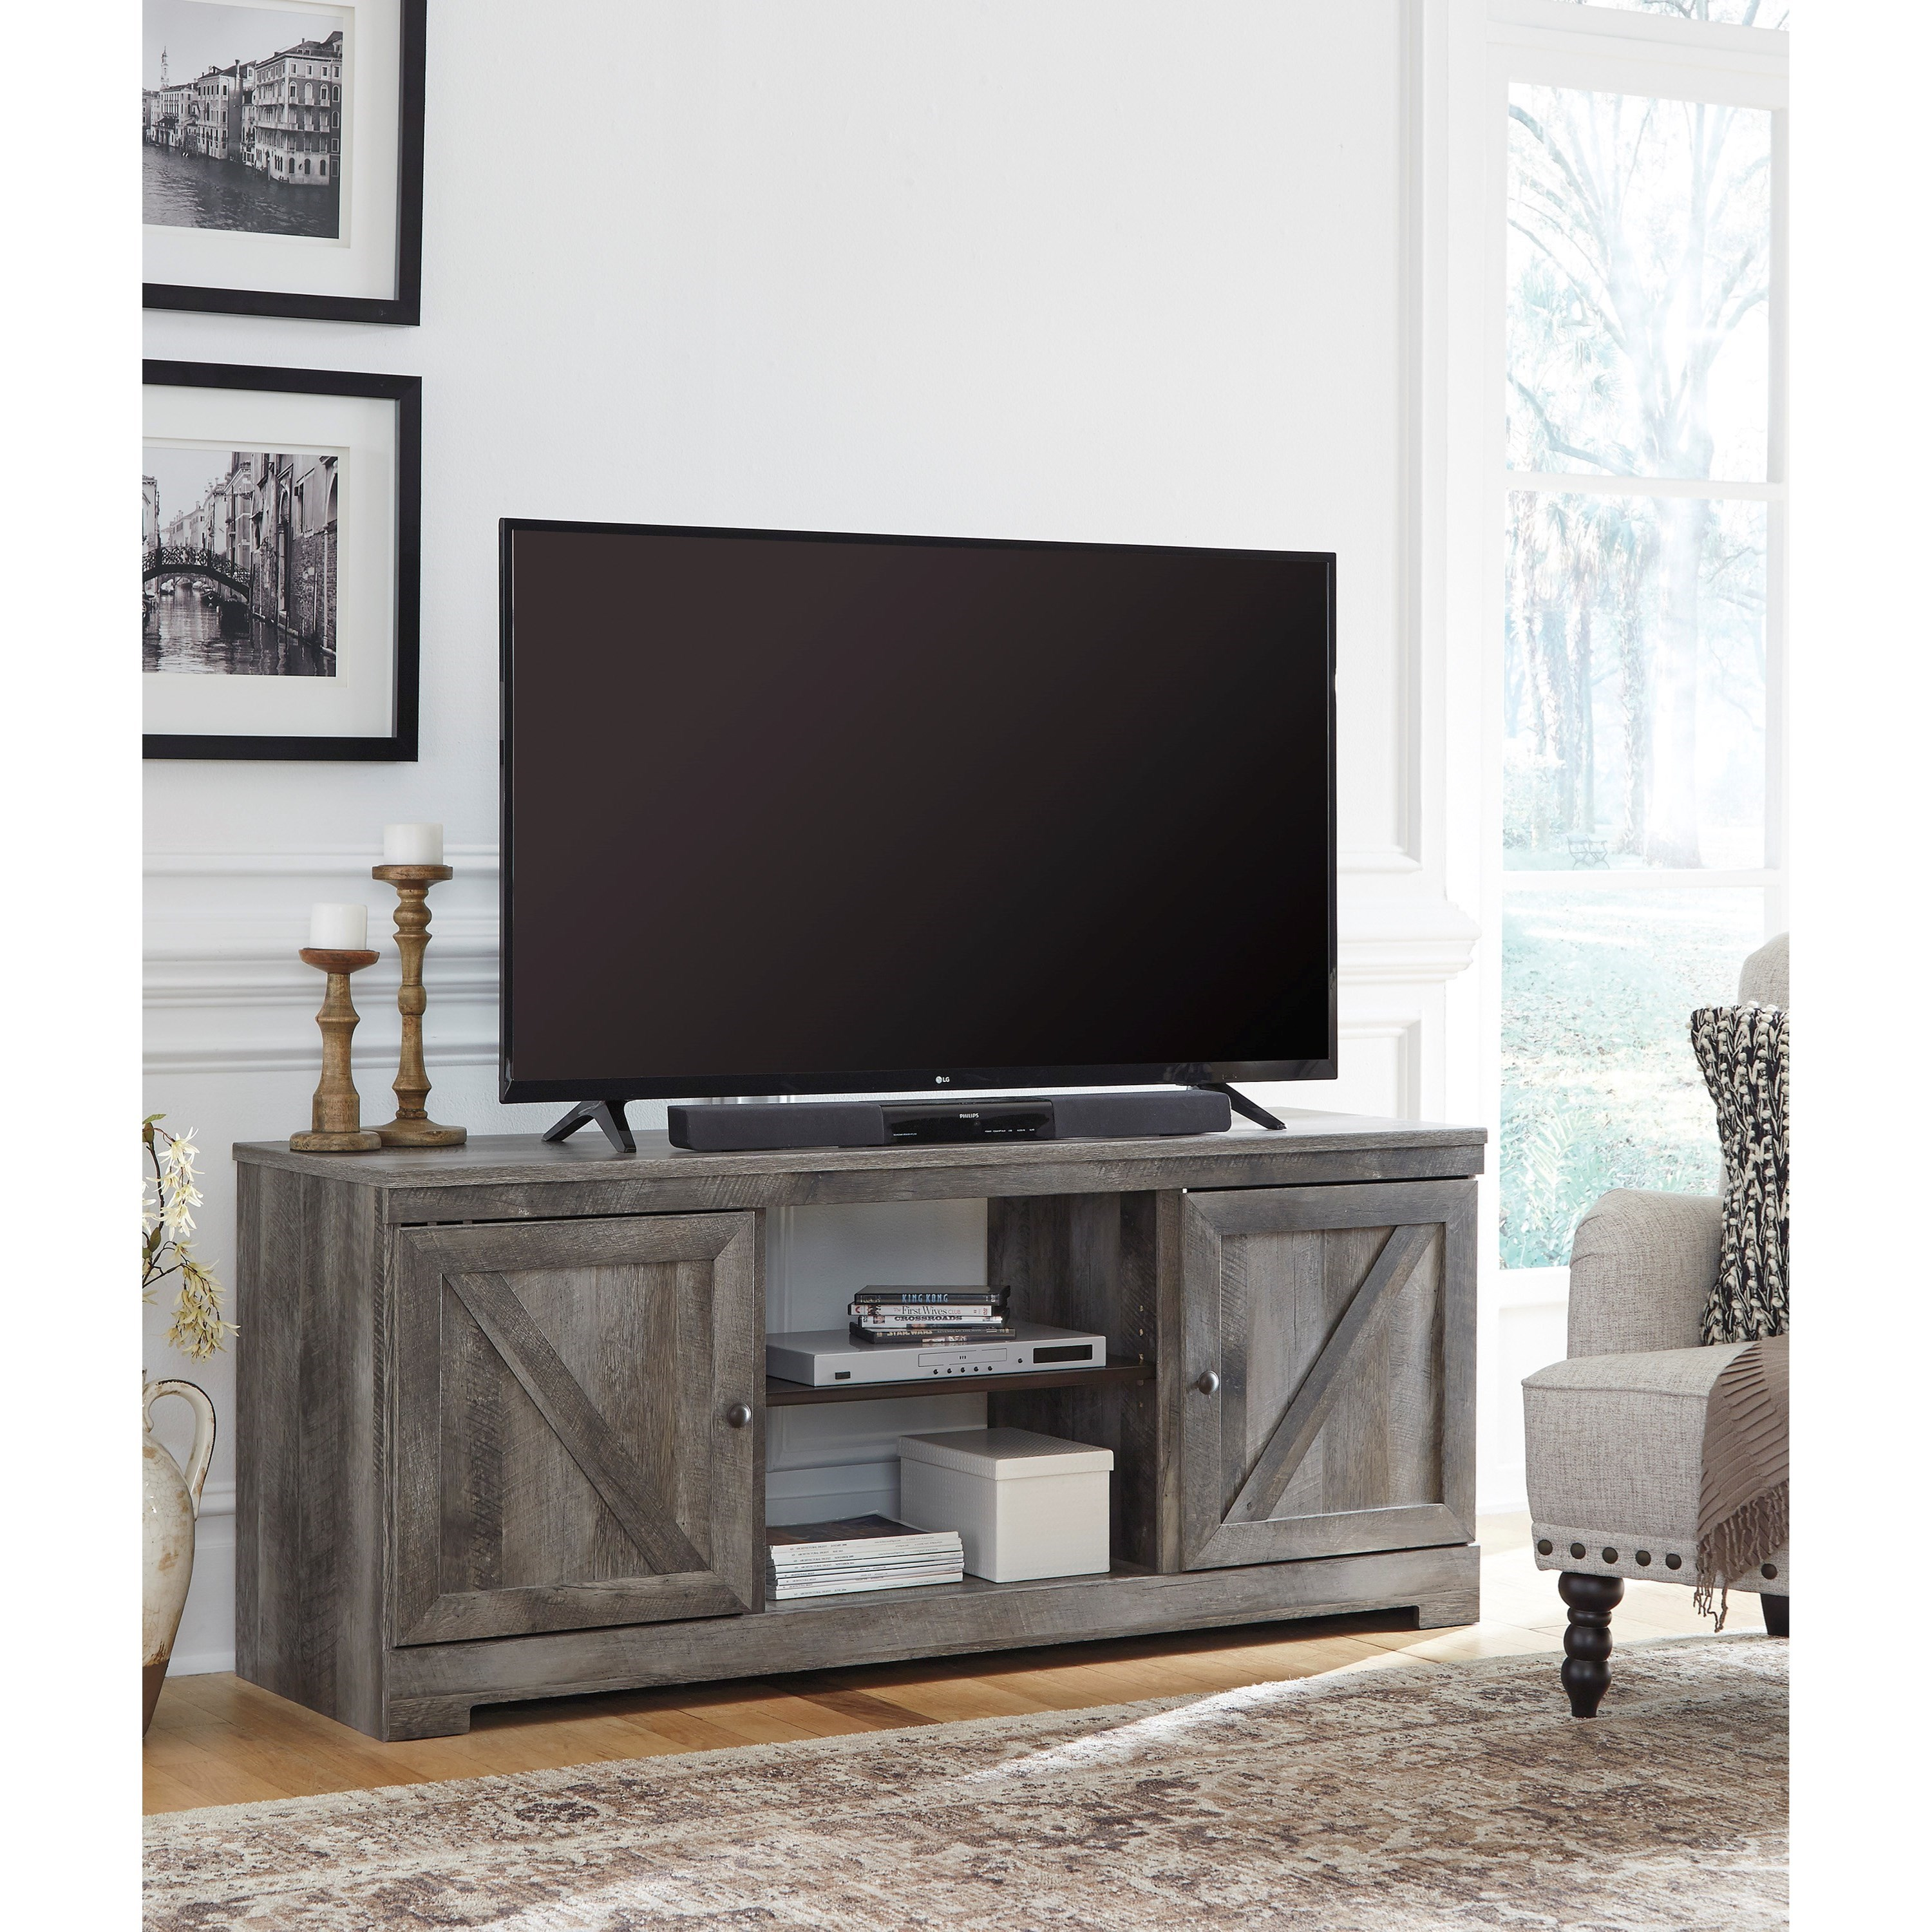 Wynnlow TV Stand by Signature Design by Ashley at HomeWorld Furniture